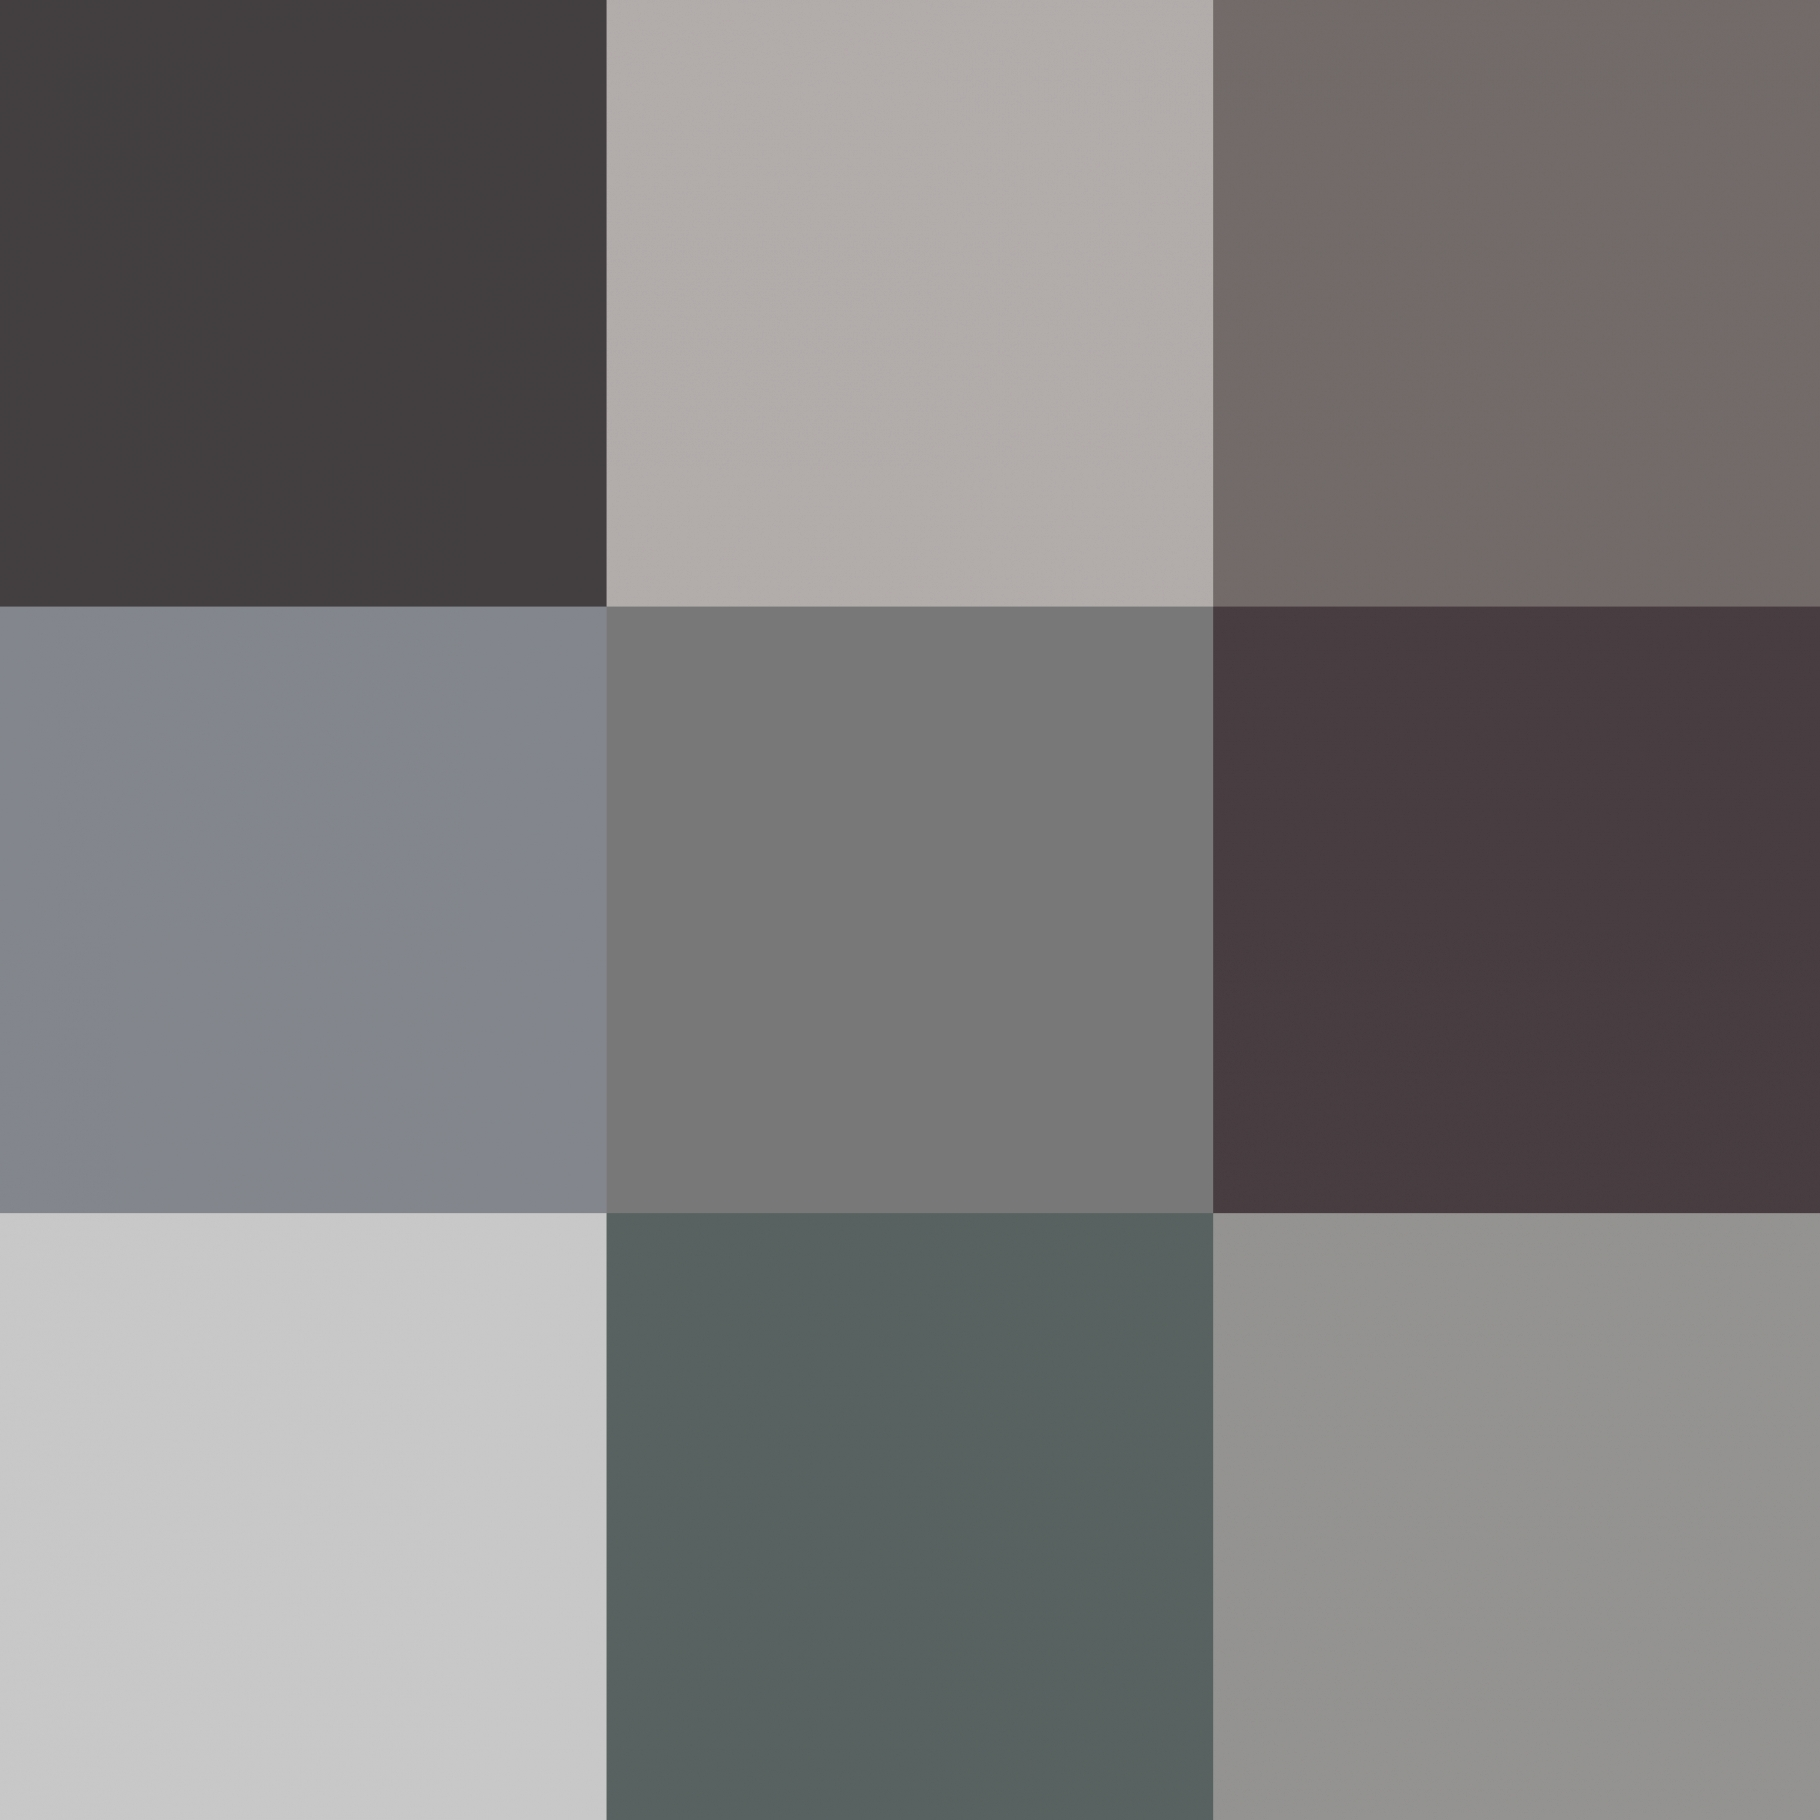 Shades Of Gray - Wikipedia, The Free Encyclopedia | Grey inside Shades Of Grey Color